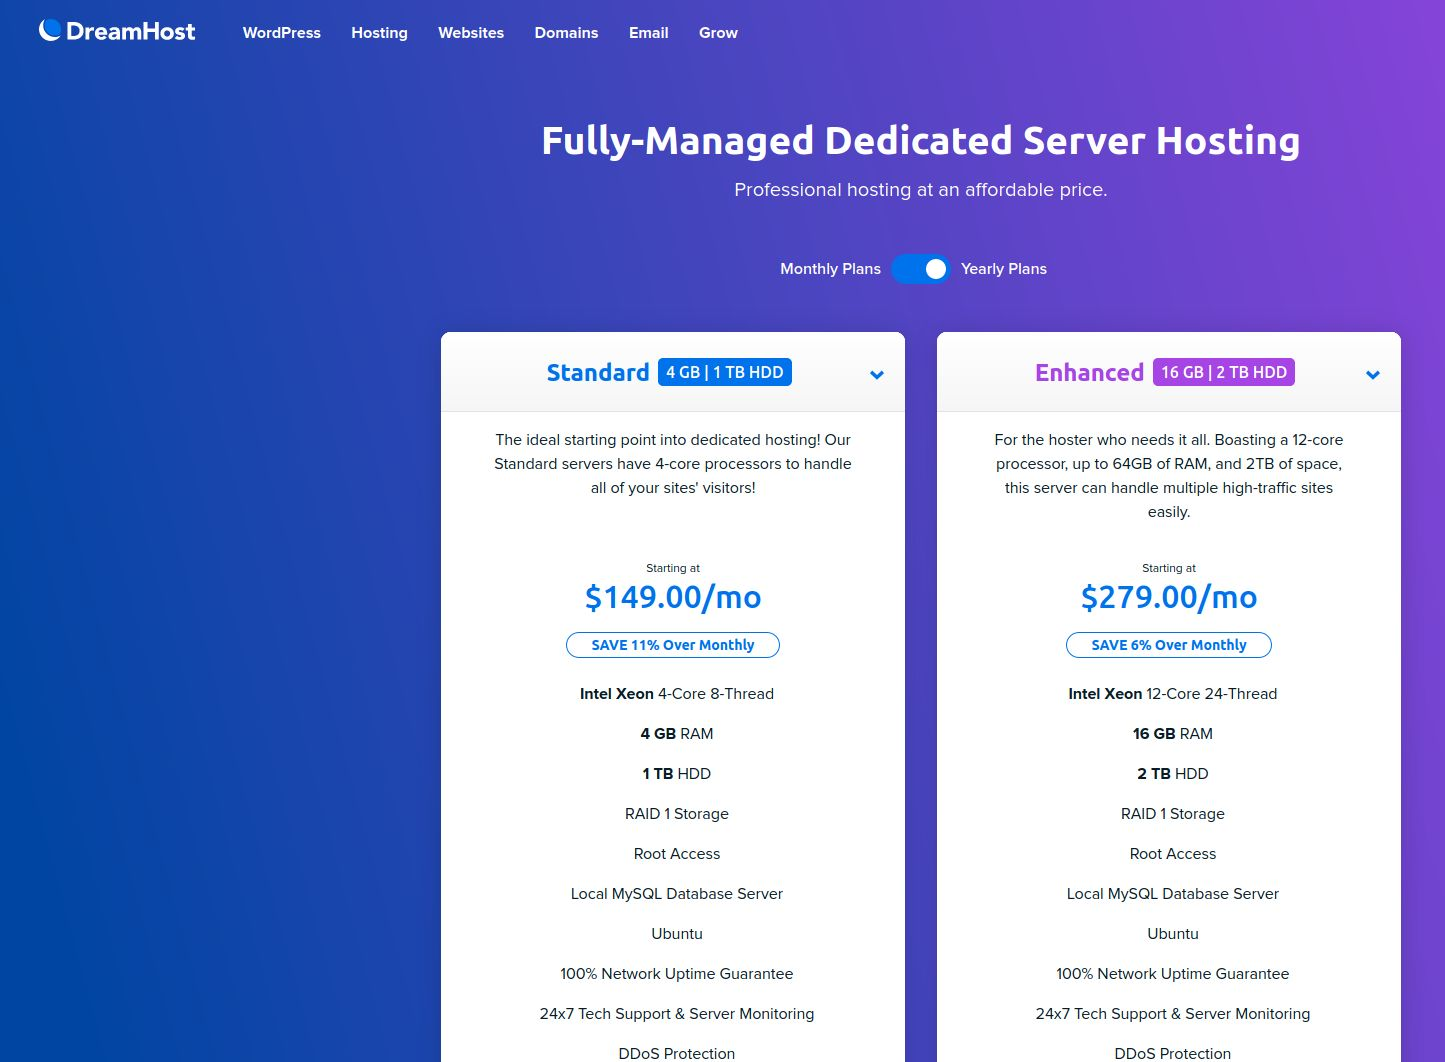 dreamhost Fully Managed Dedicated Server Hosting